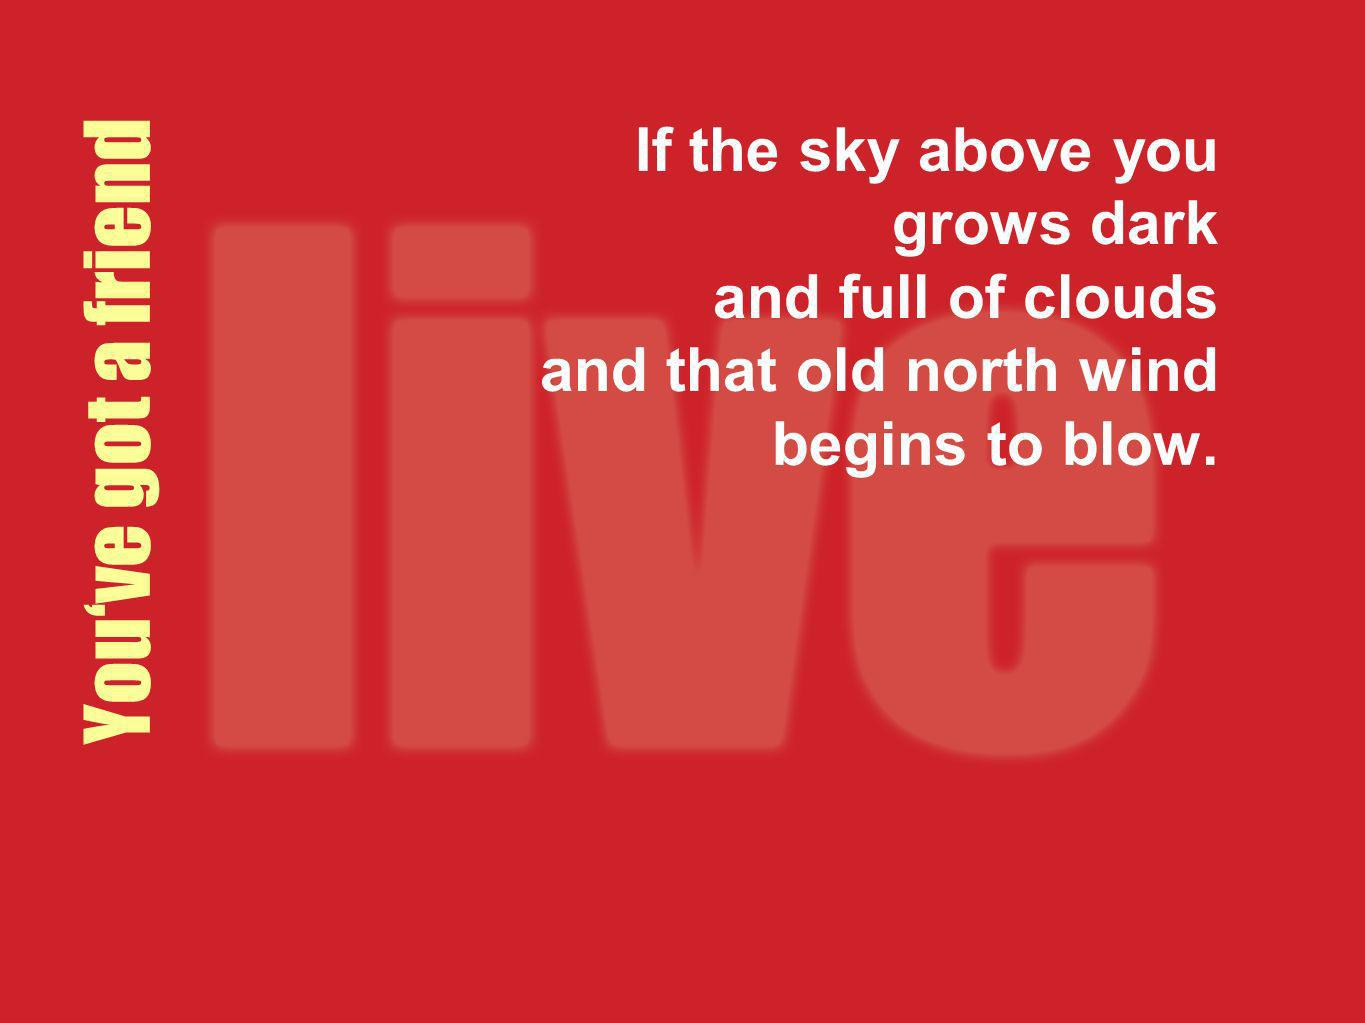 If the sky above you grows dark and full of clouds and that old north wind begins to blow.